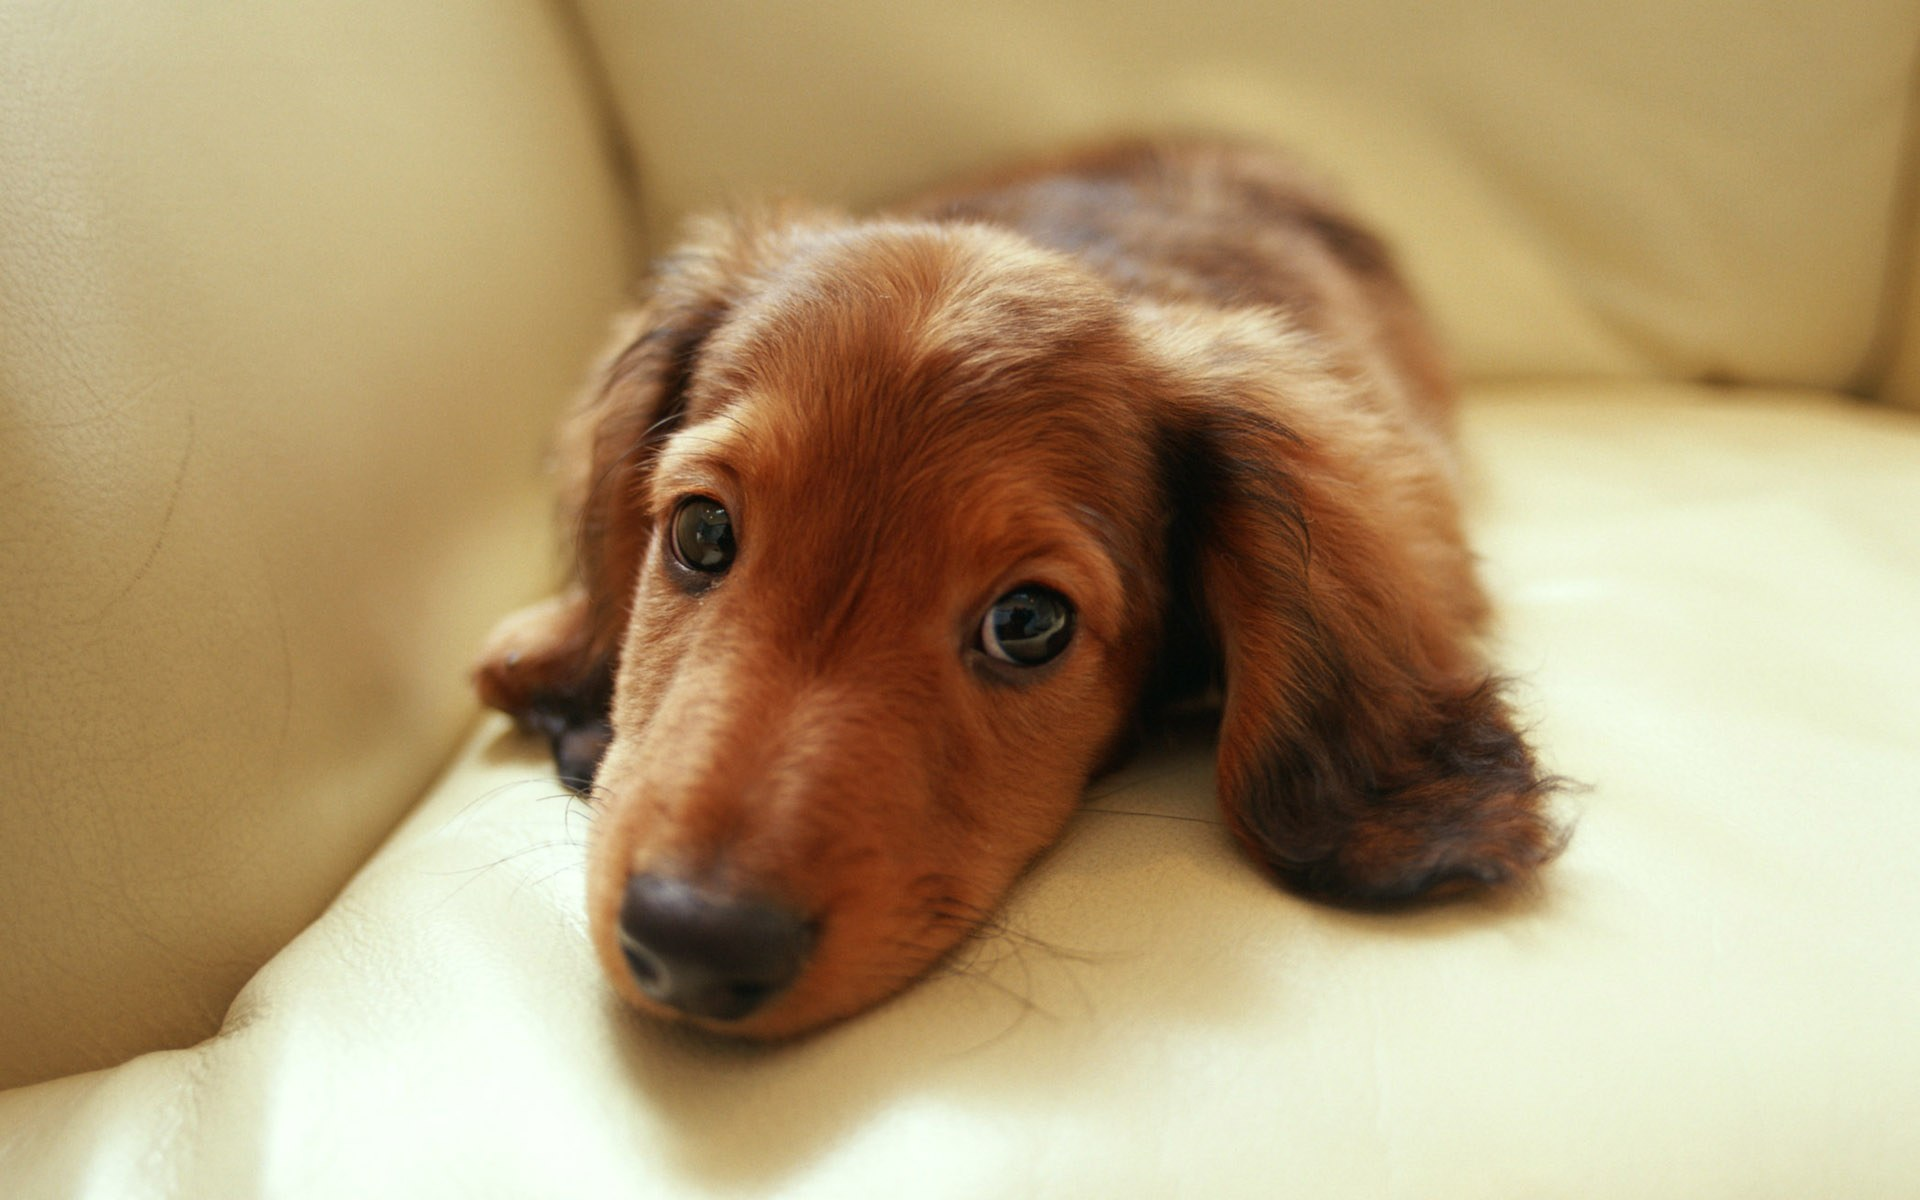 Animals Dogs Sad dachshund lying on the couch 084279